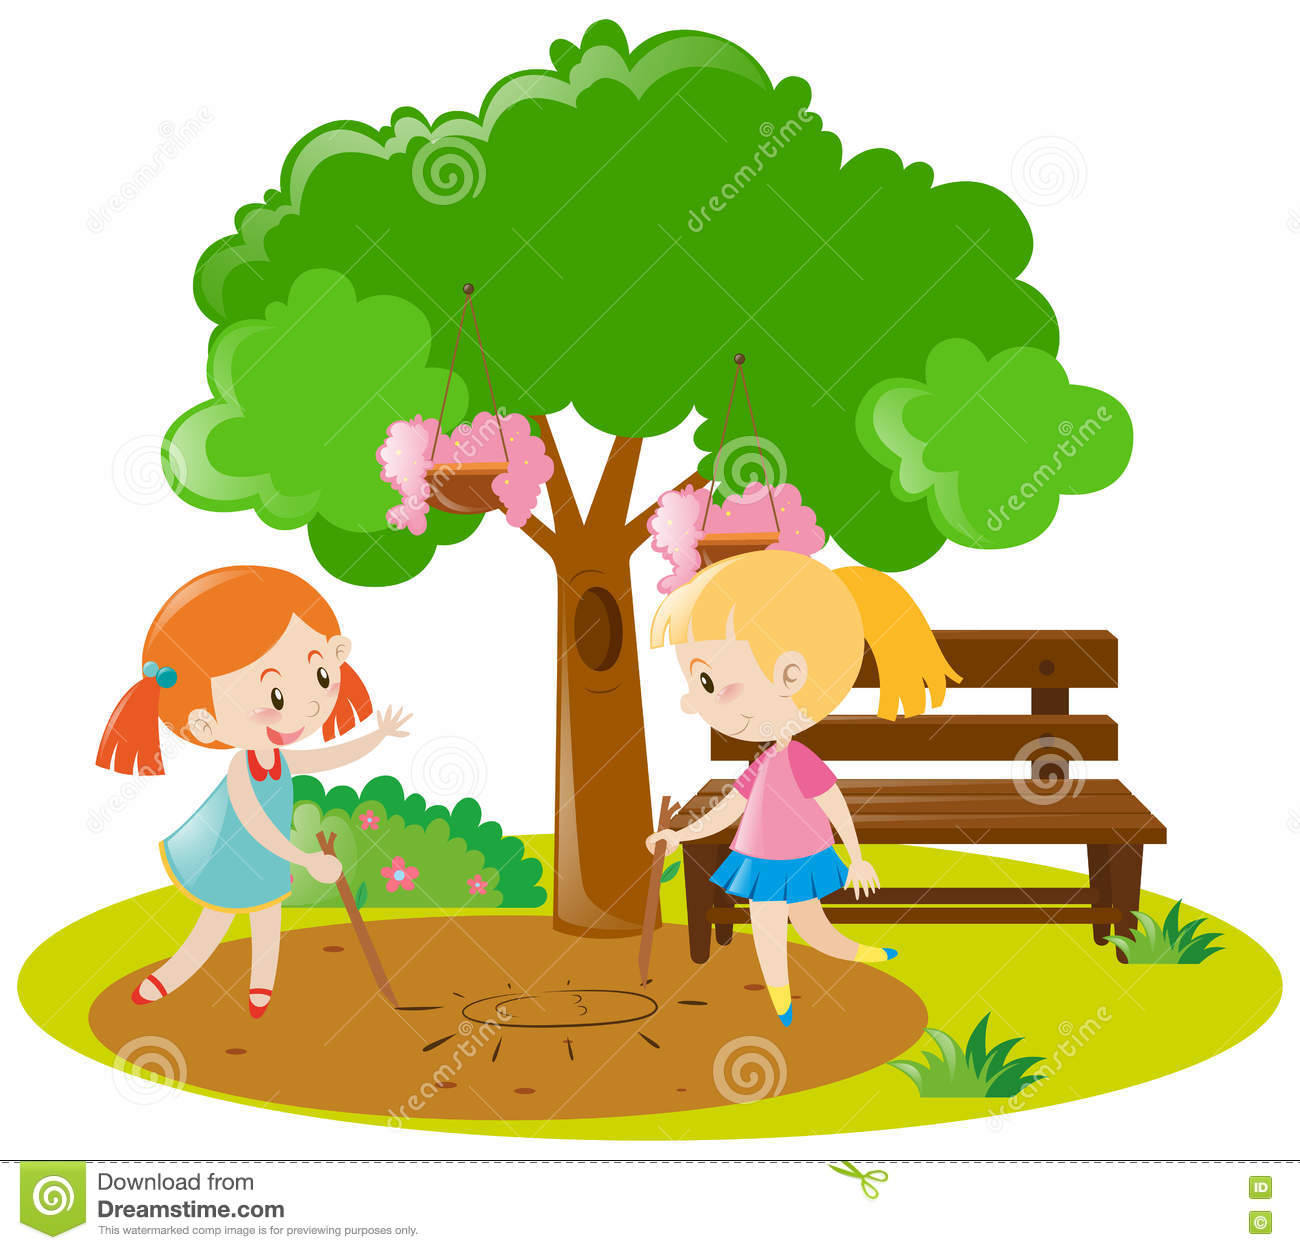 Playing garden drawing for kids - Drawing Illustration Path Object Pupil Children